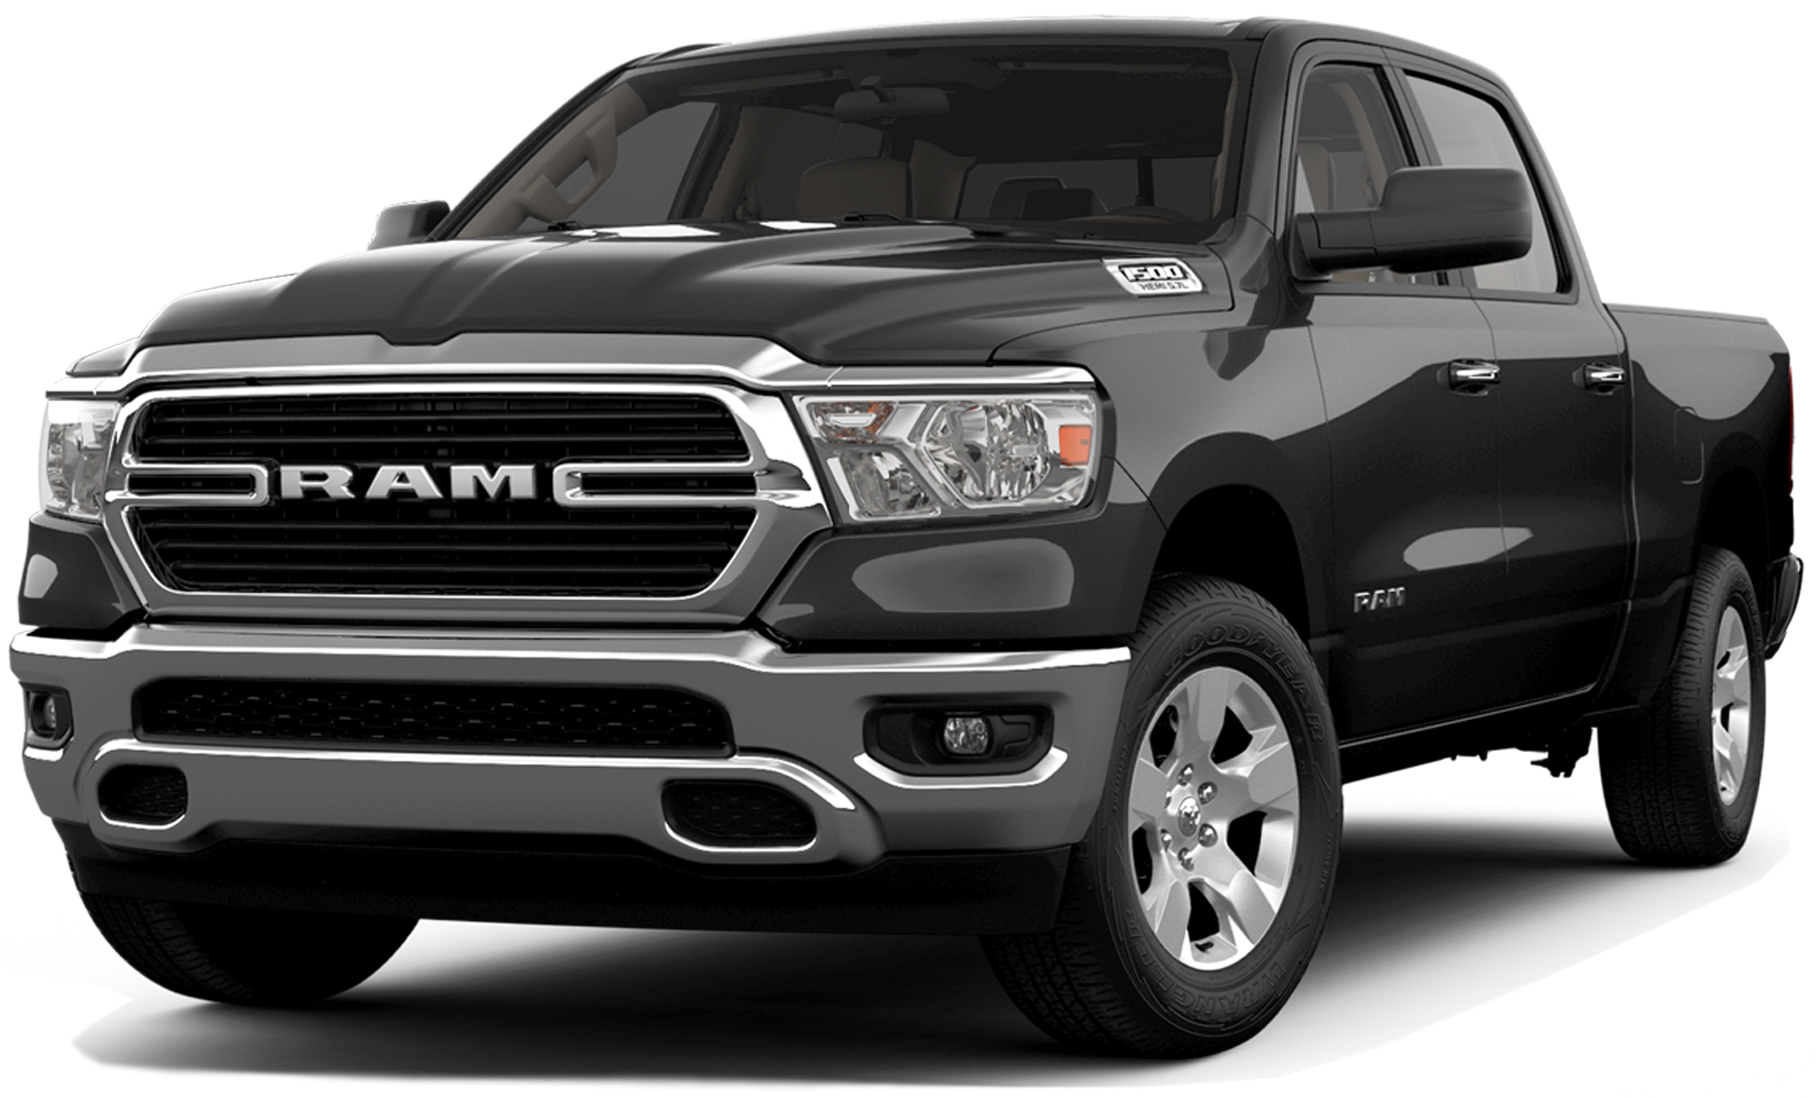 Review & Compare Ram 1500 at Larry H. Miller Chrysler Jeep Dodge Ram Surprise